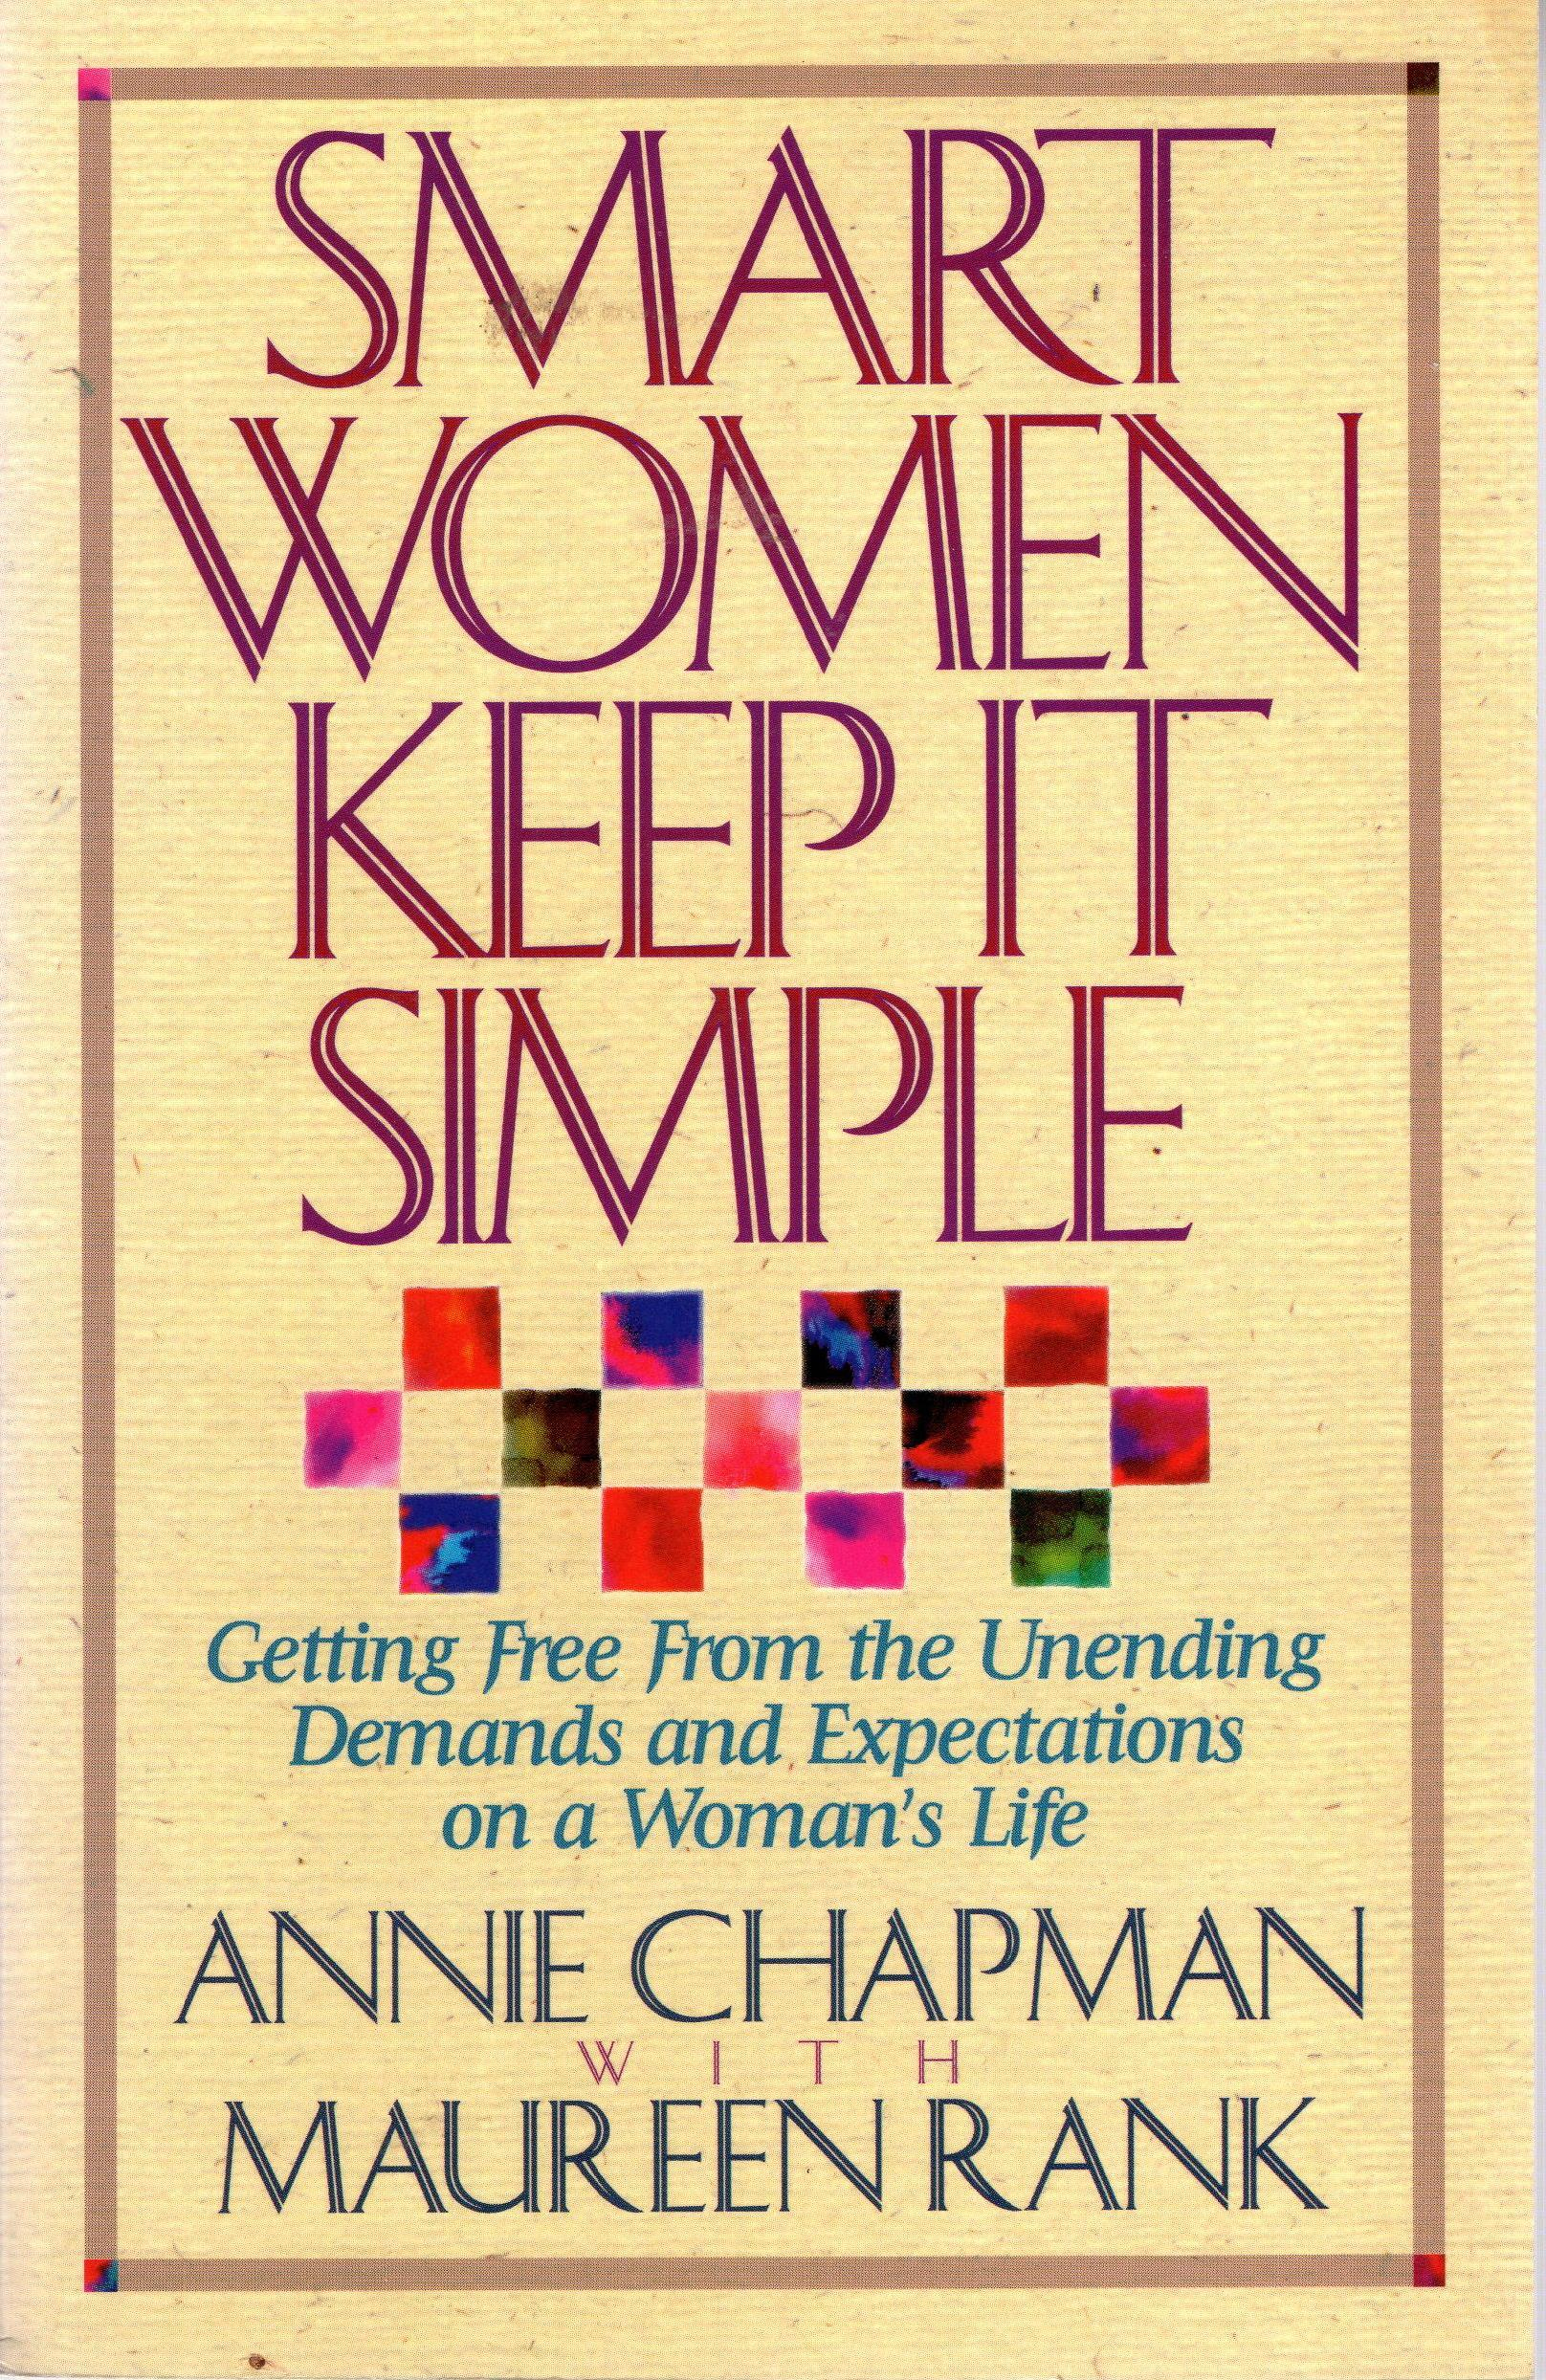 Image for SMART WOMEN KEEP IT SIMPLE